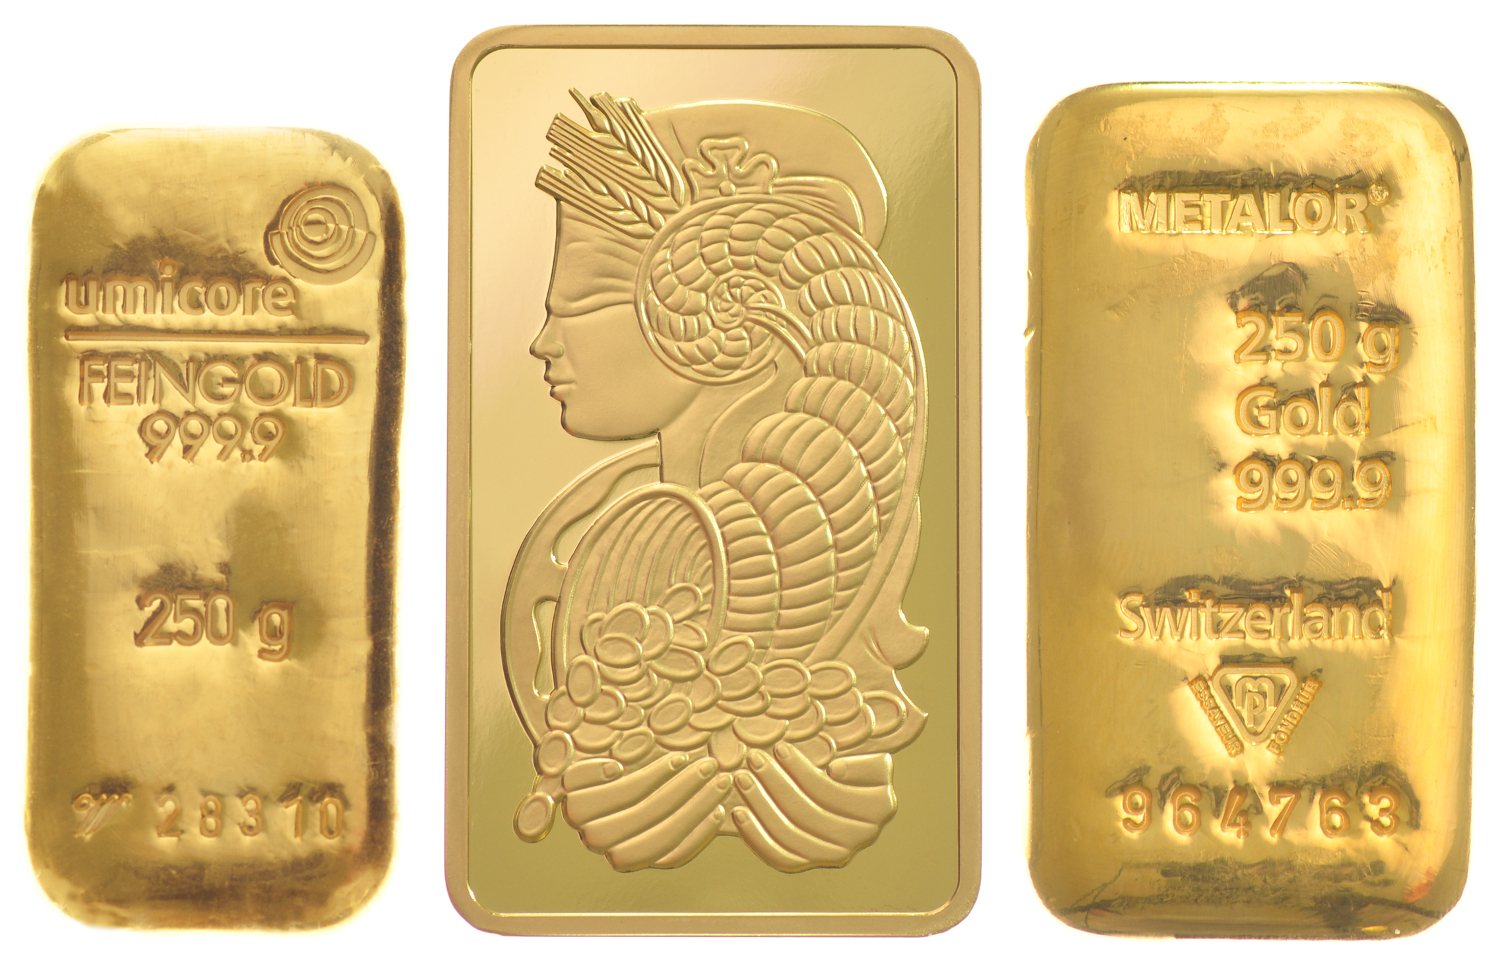 250g Gold Bars Best Value Bullionbypost From 163 7 980